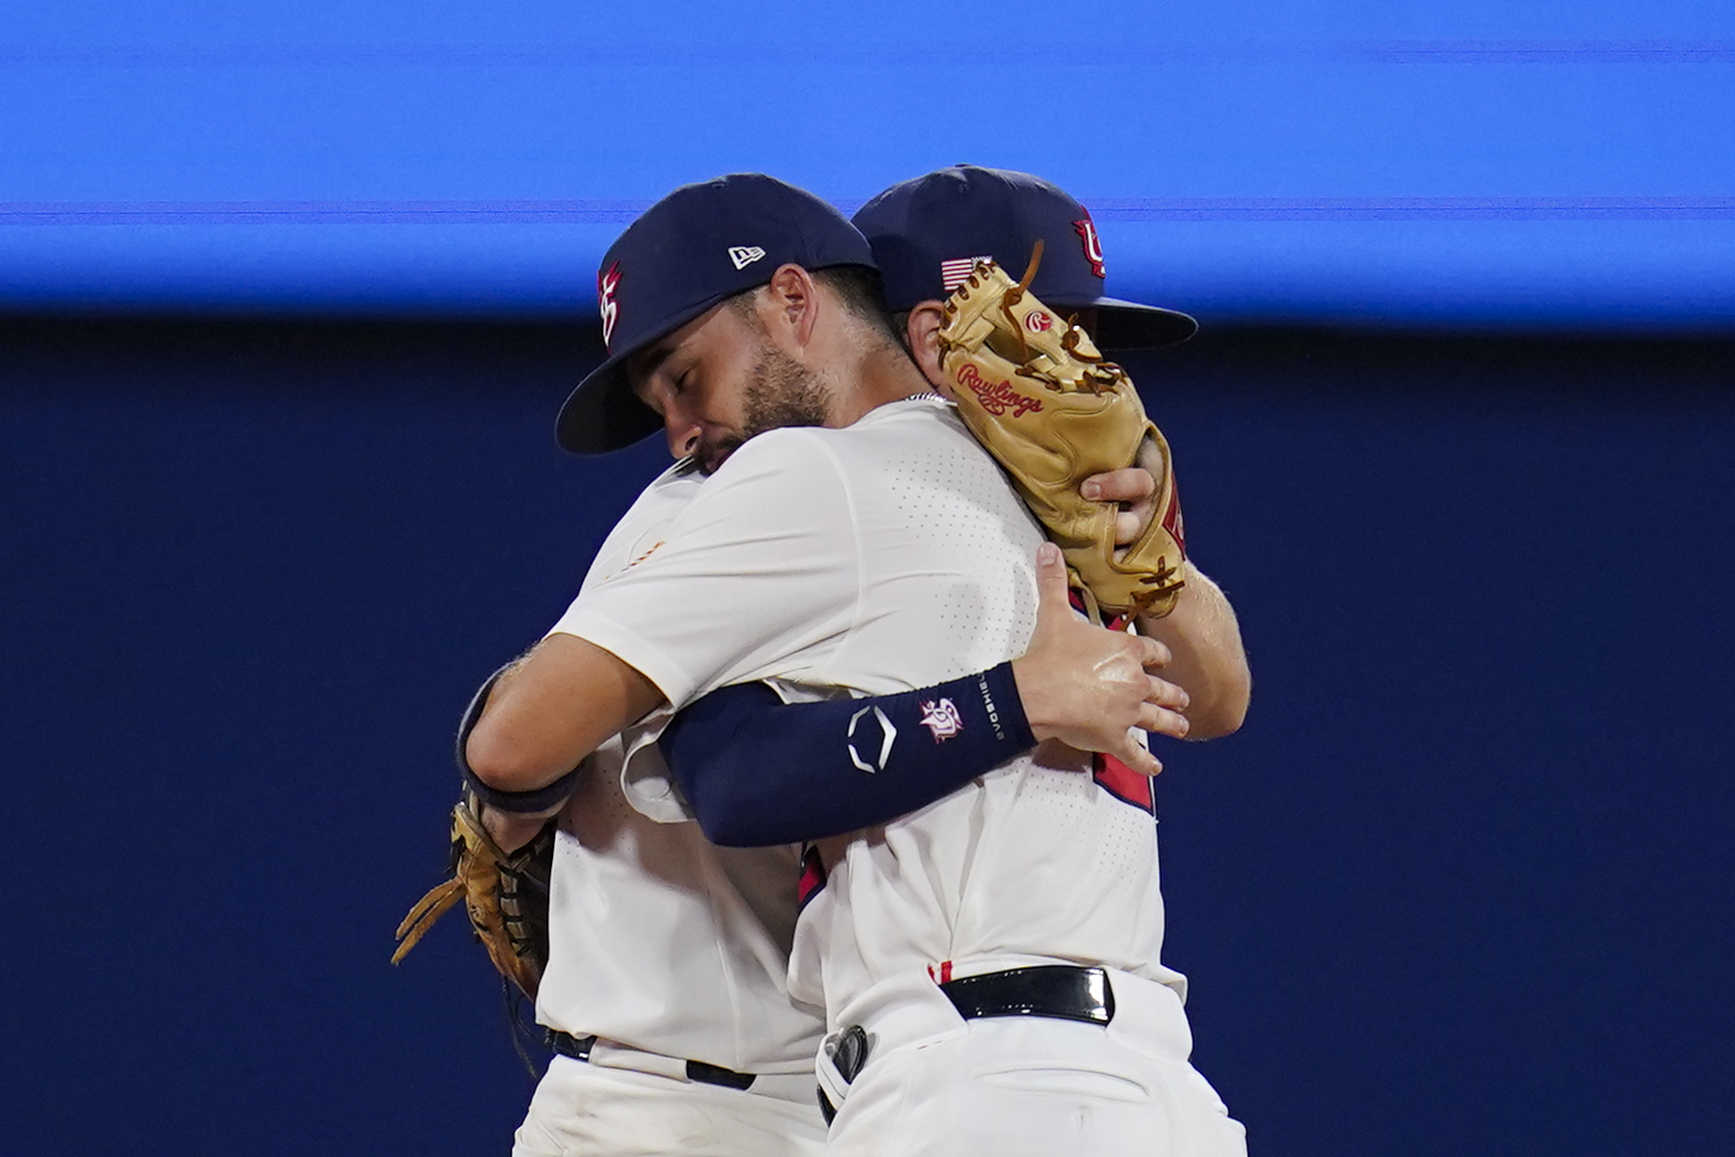 Team USA's Eddy Alvarez, front, and Nick Allen embrace after a semi-final baseball game against South Korea at the 2020 Summer Olympics, Thursday, Aug. 5, 2021, in Yokohama, Japan. The United States won 7-2.